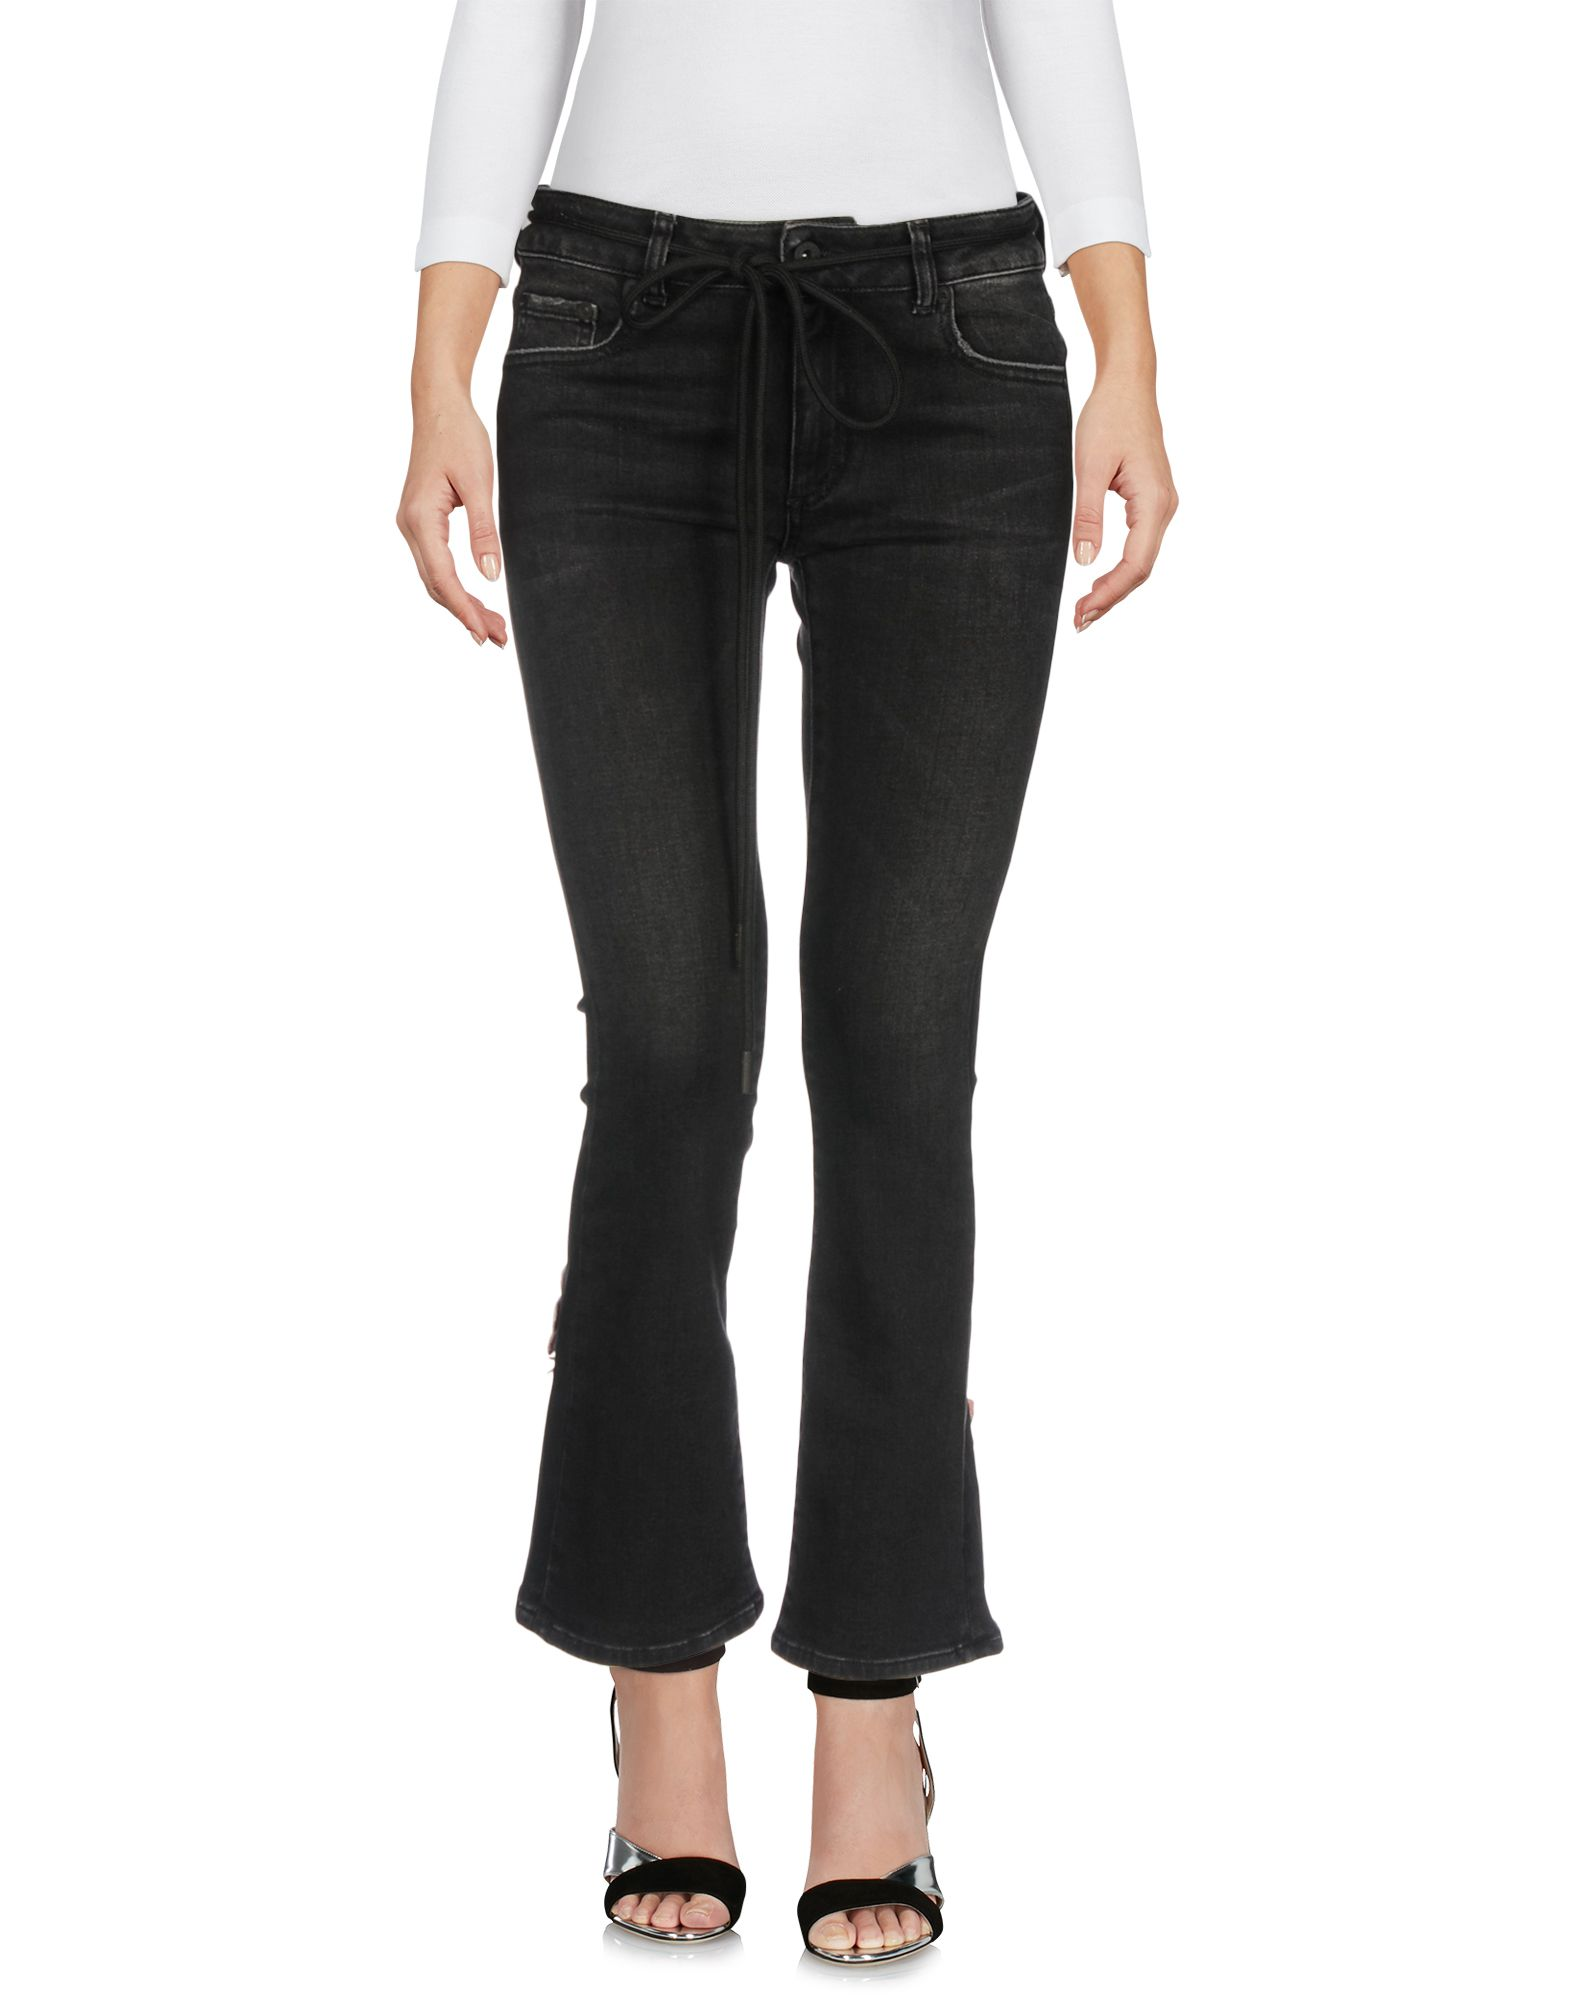 Pantaloni Jeans Off-White™ Donna - Acquista online su yIty98O2RE